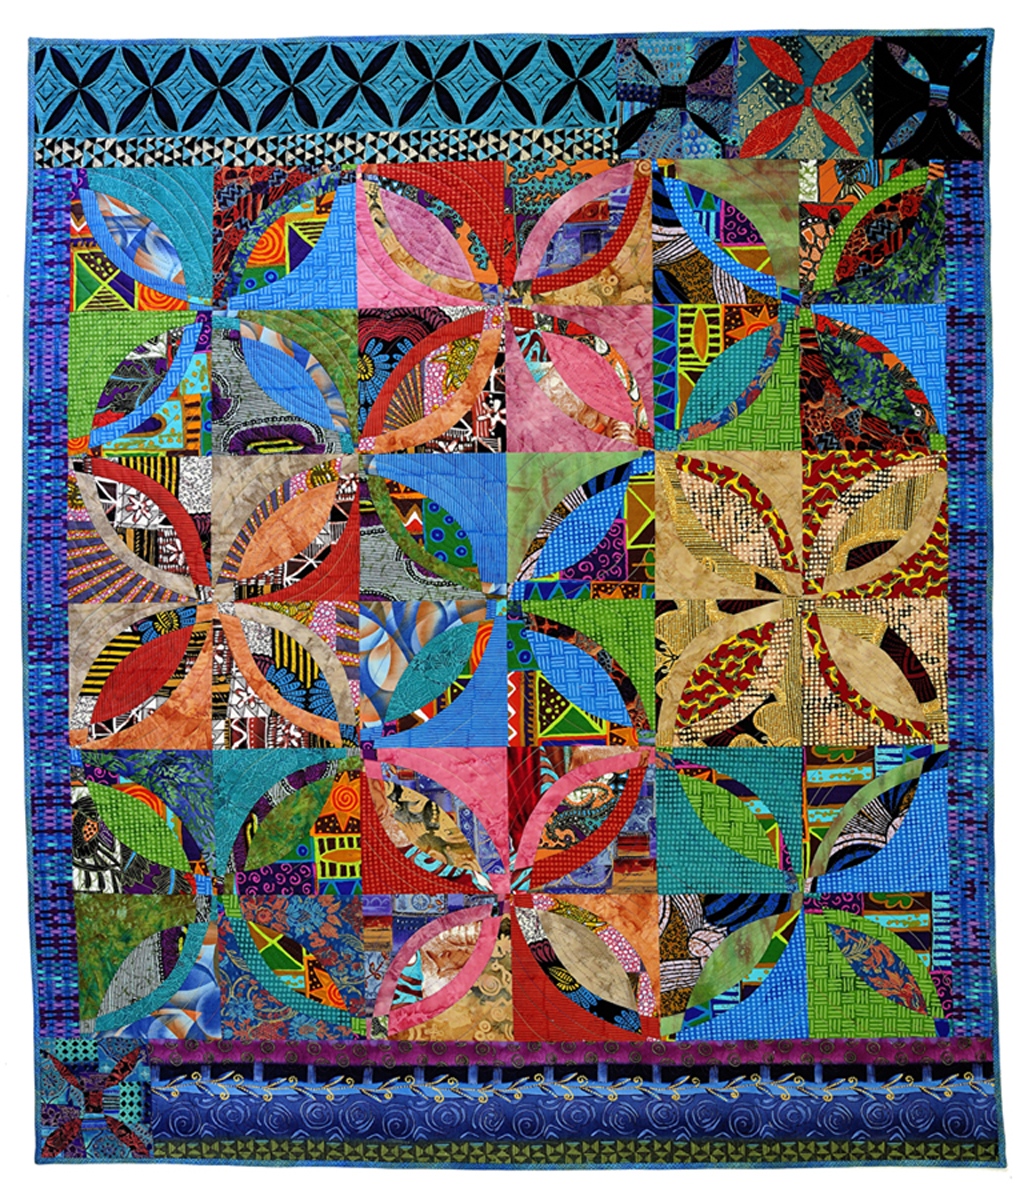 Double Wedding Ring Quilt Pattern: Quilt Inspiration: Wedding Rings Part 8: Fun Easy Designed